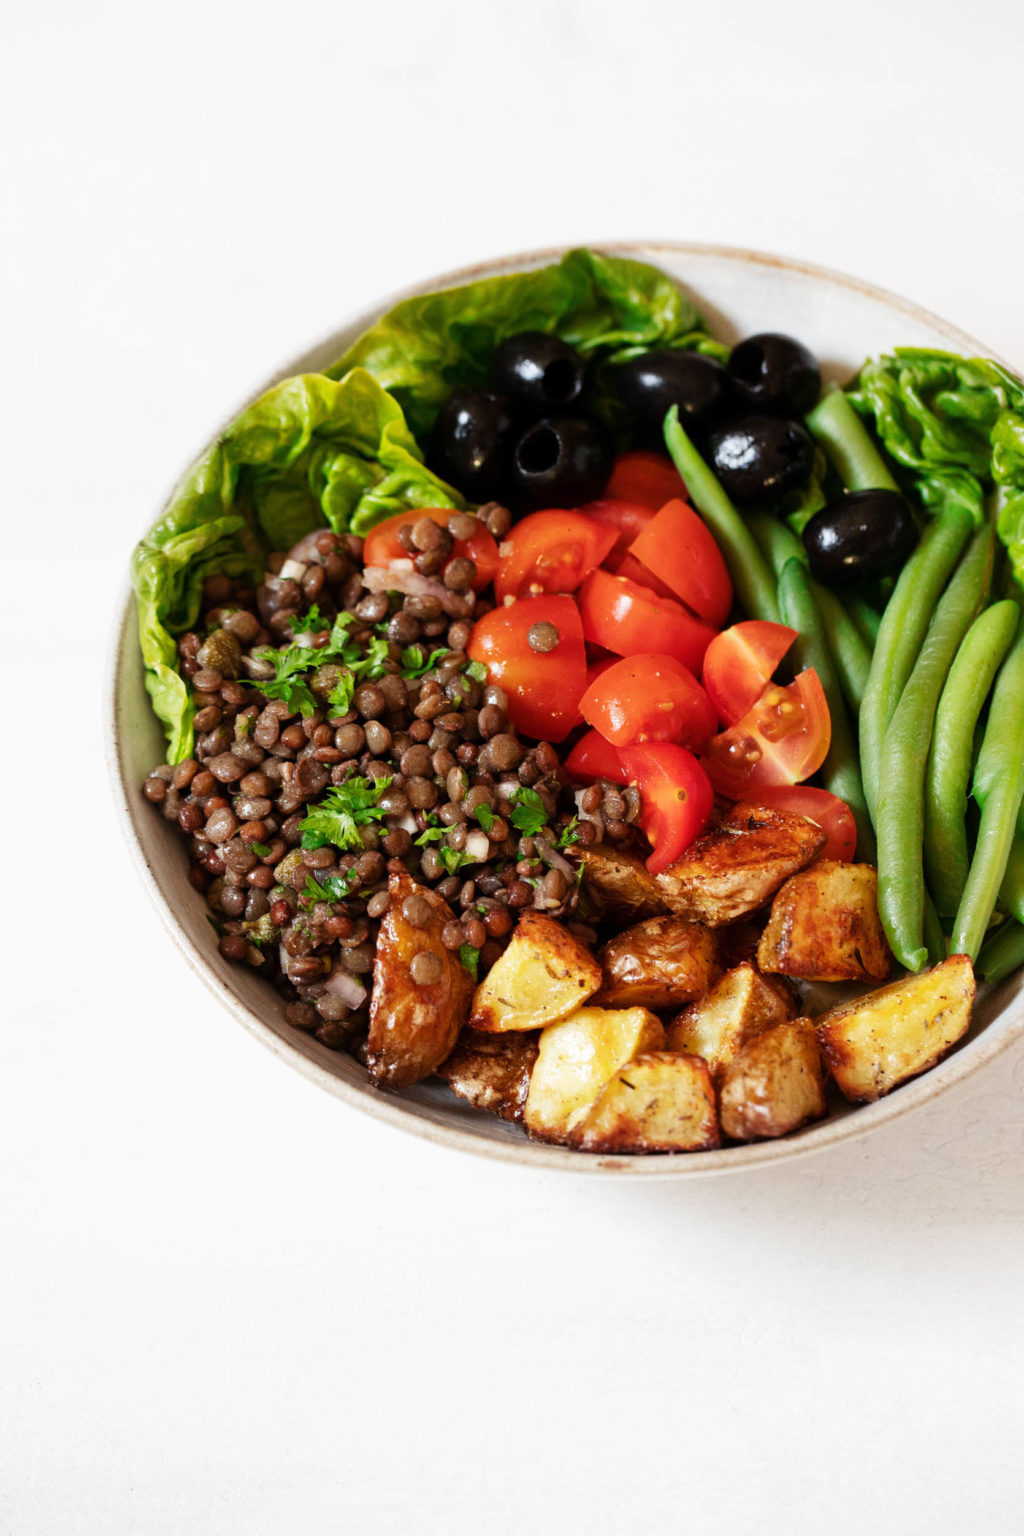 A white bowl is filled with cooked French lentils, baked potatoes, tomatoes, olives and green beans.